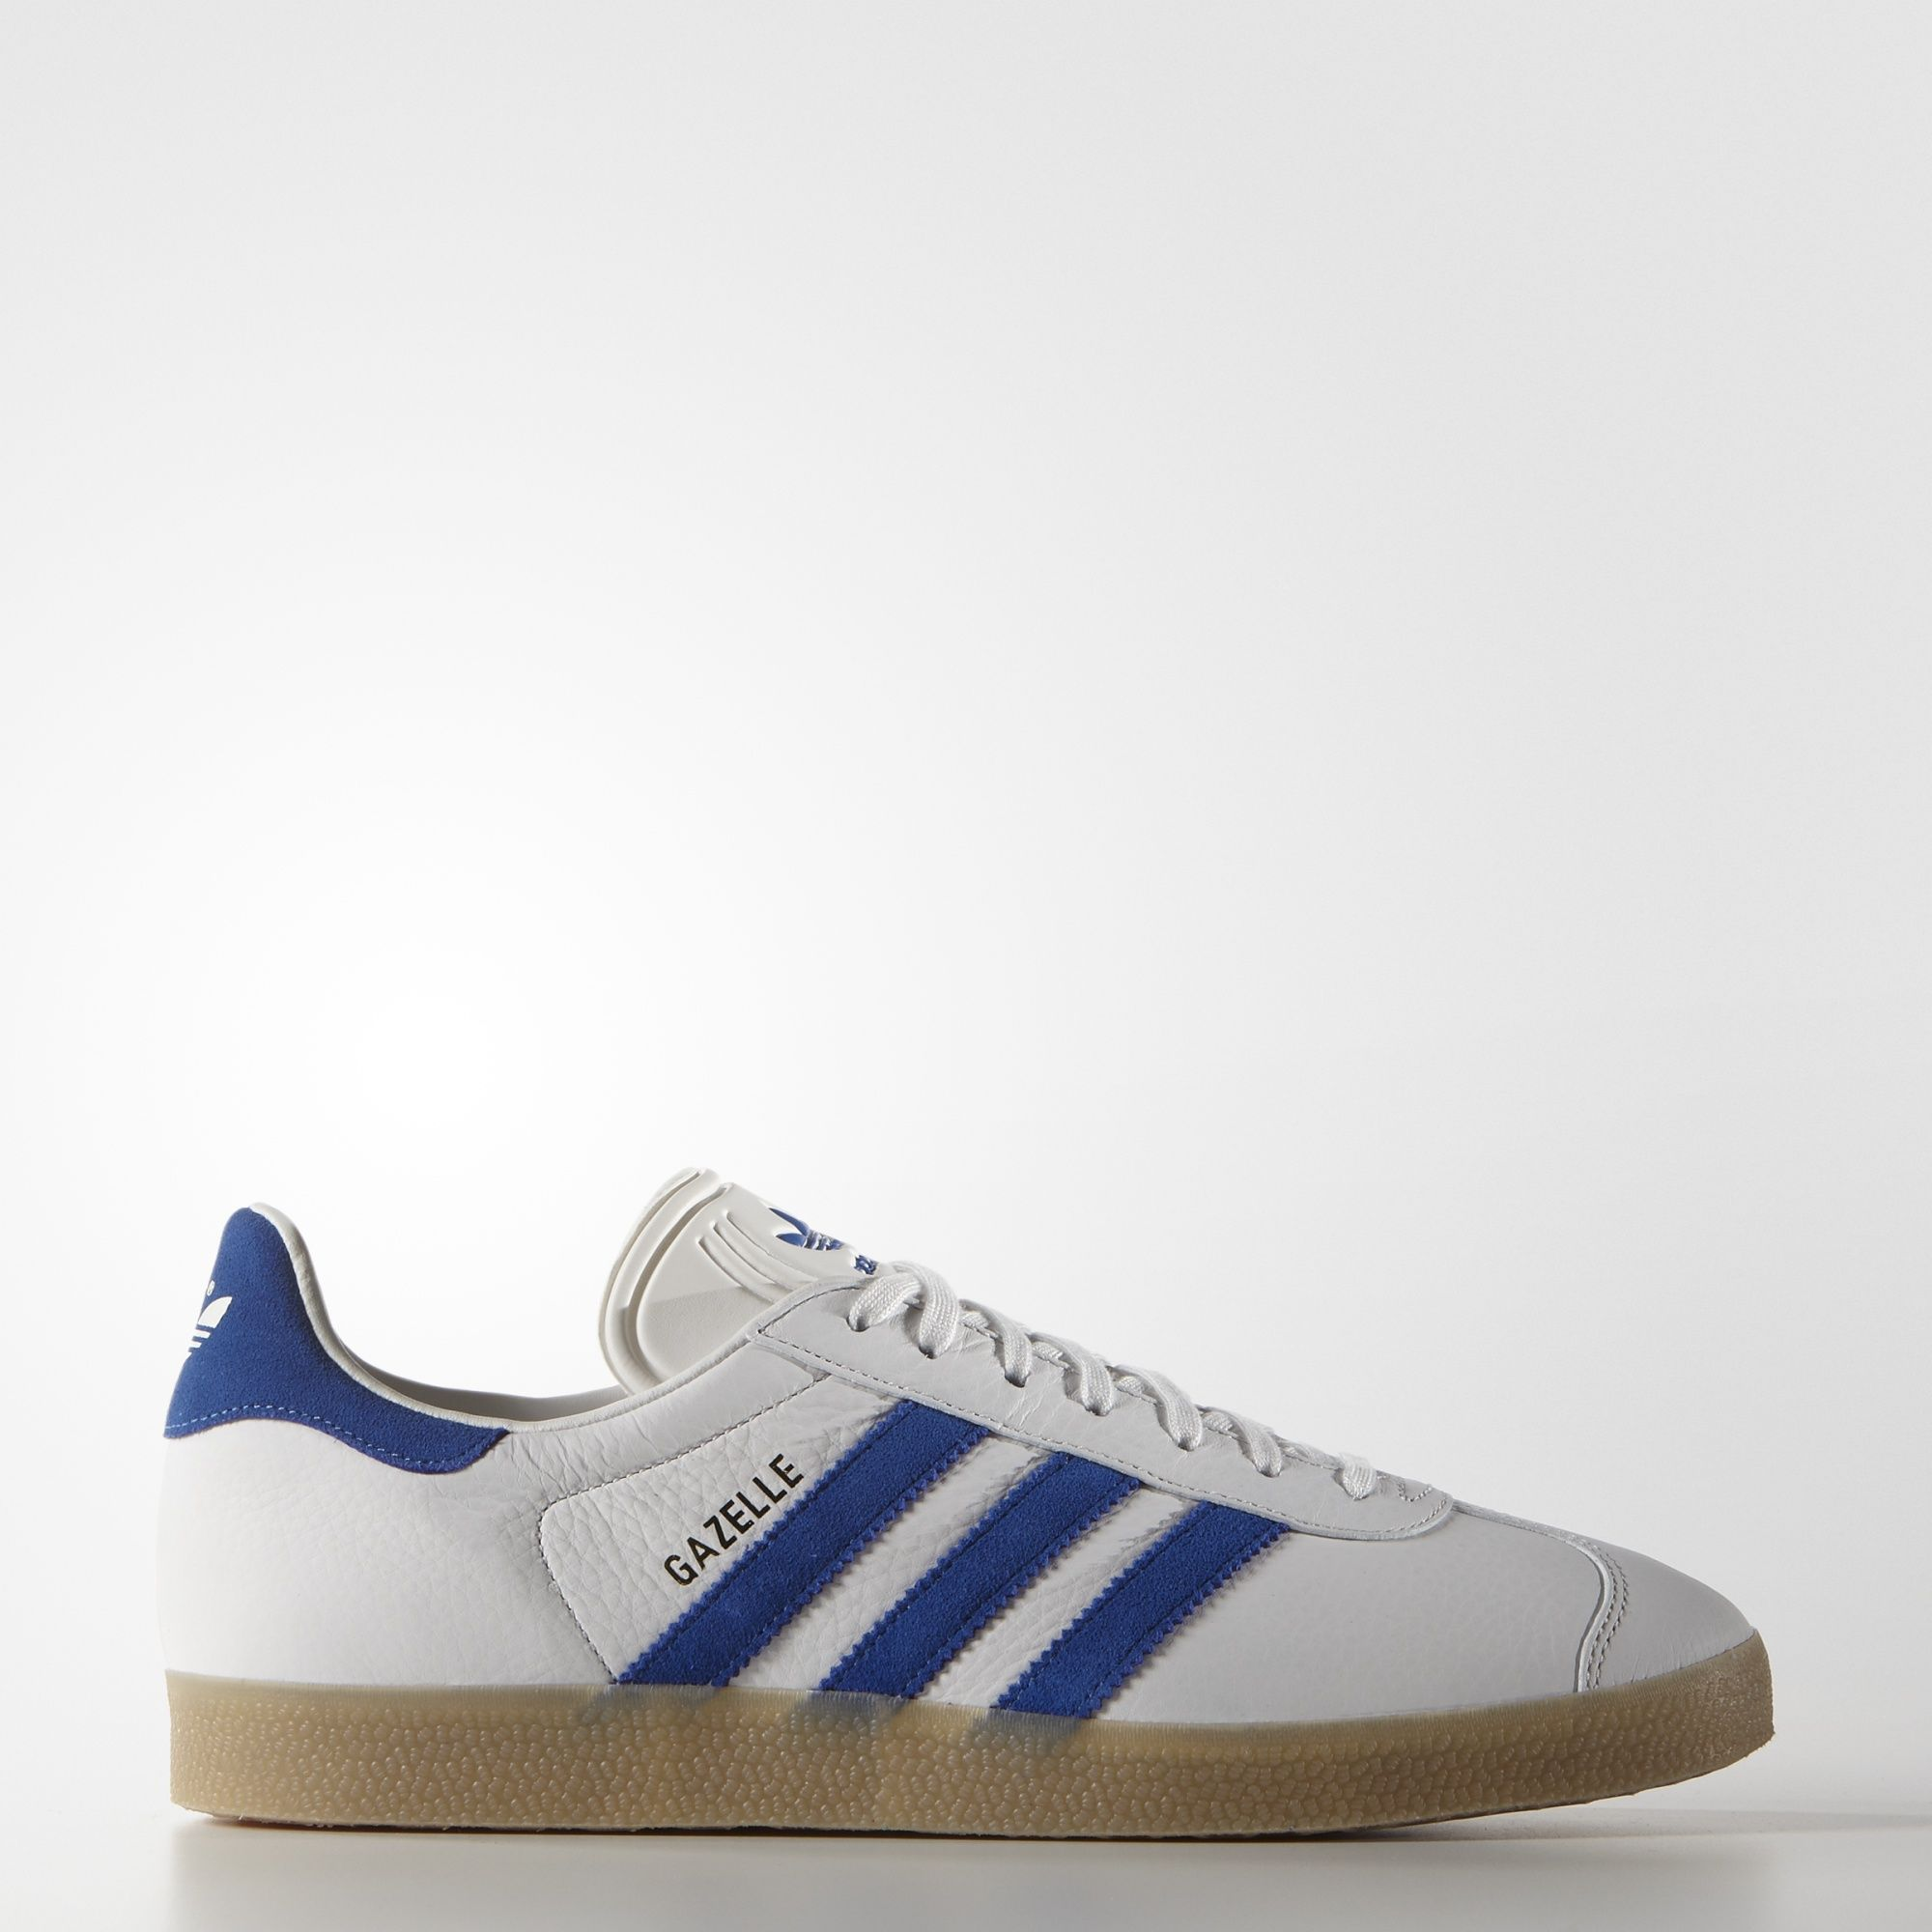 Plenty of new Gazelle colourways this season including this pair in Vintage  White / Bold Blue